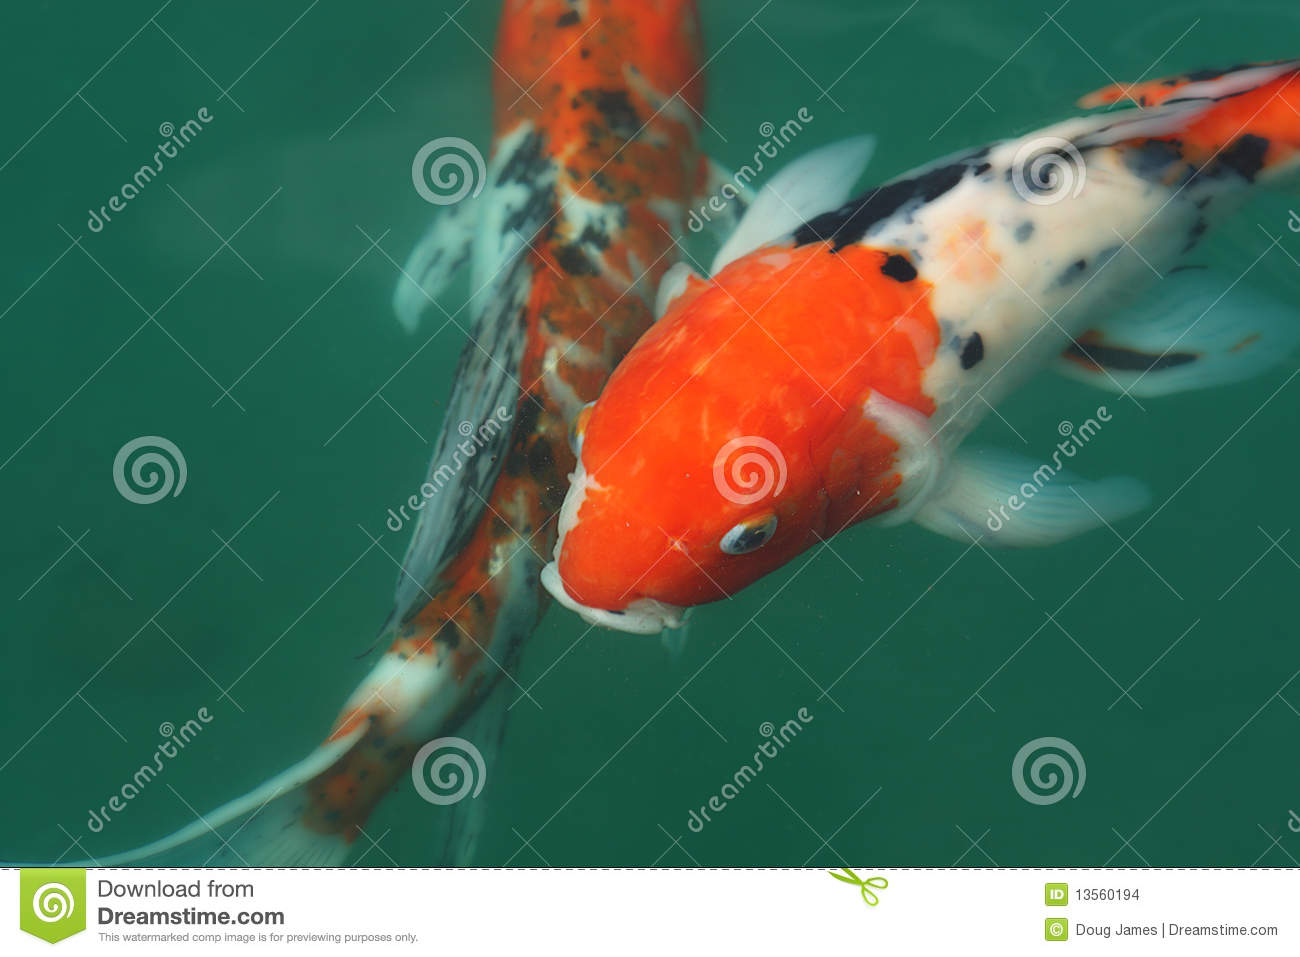 Koi fish in a pond stock images image 13560194 for Koi fish in pool